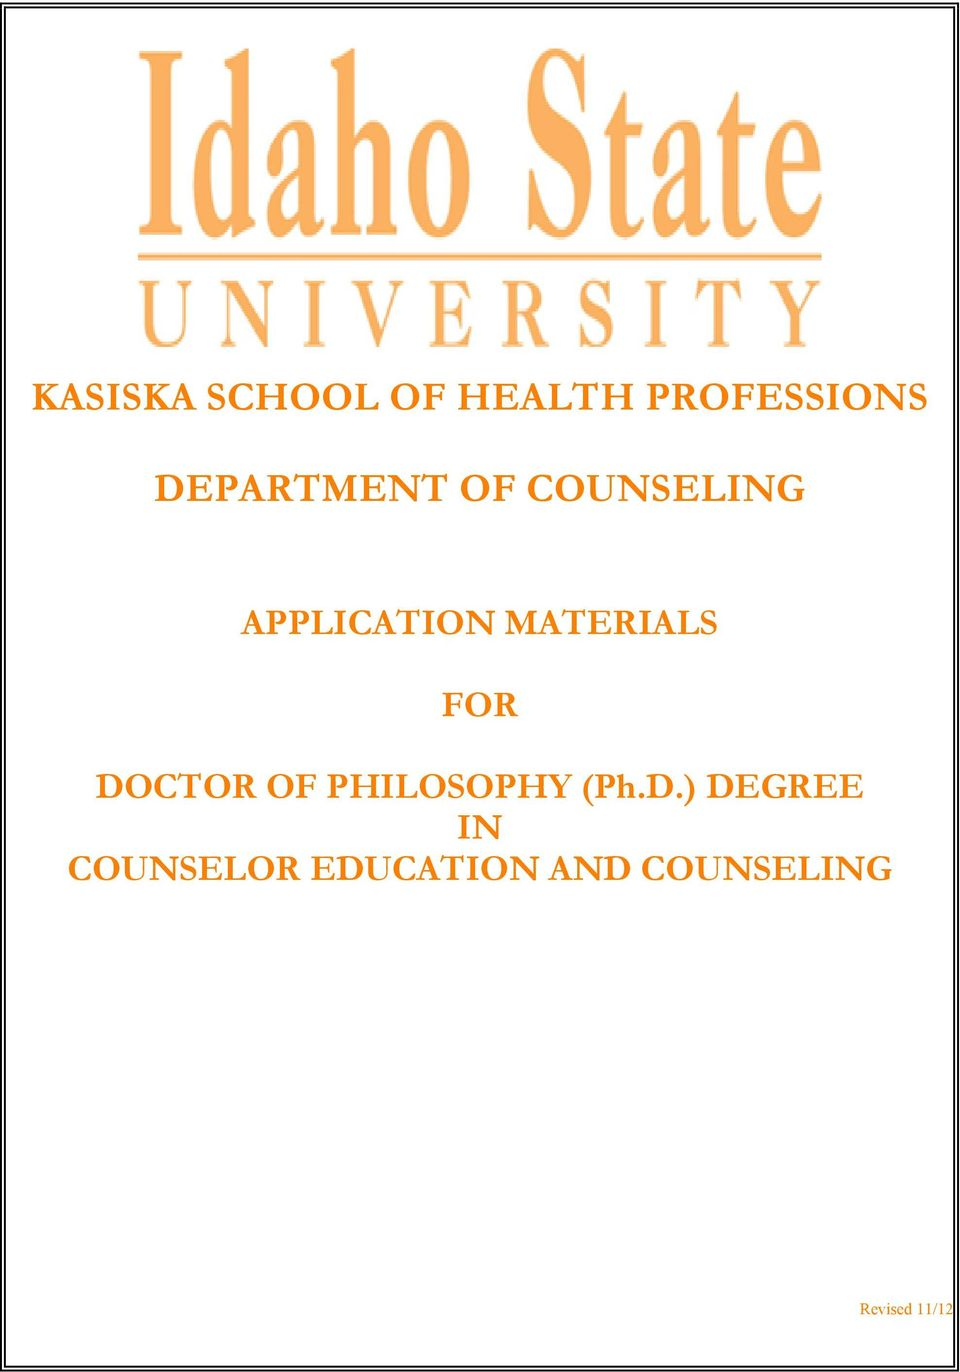 DEGREE IN COUNSELOR